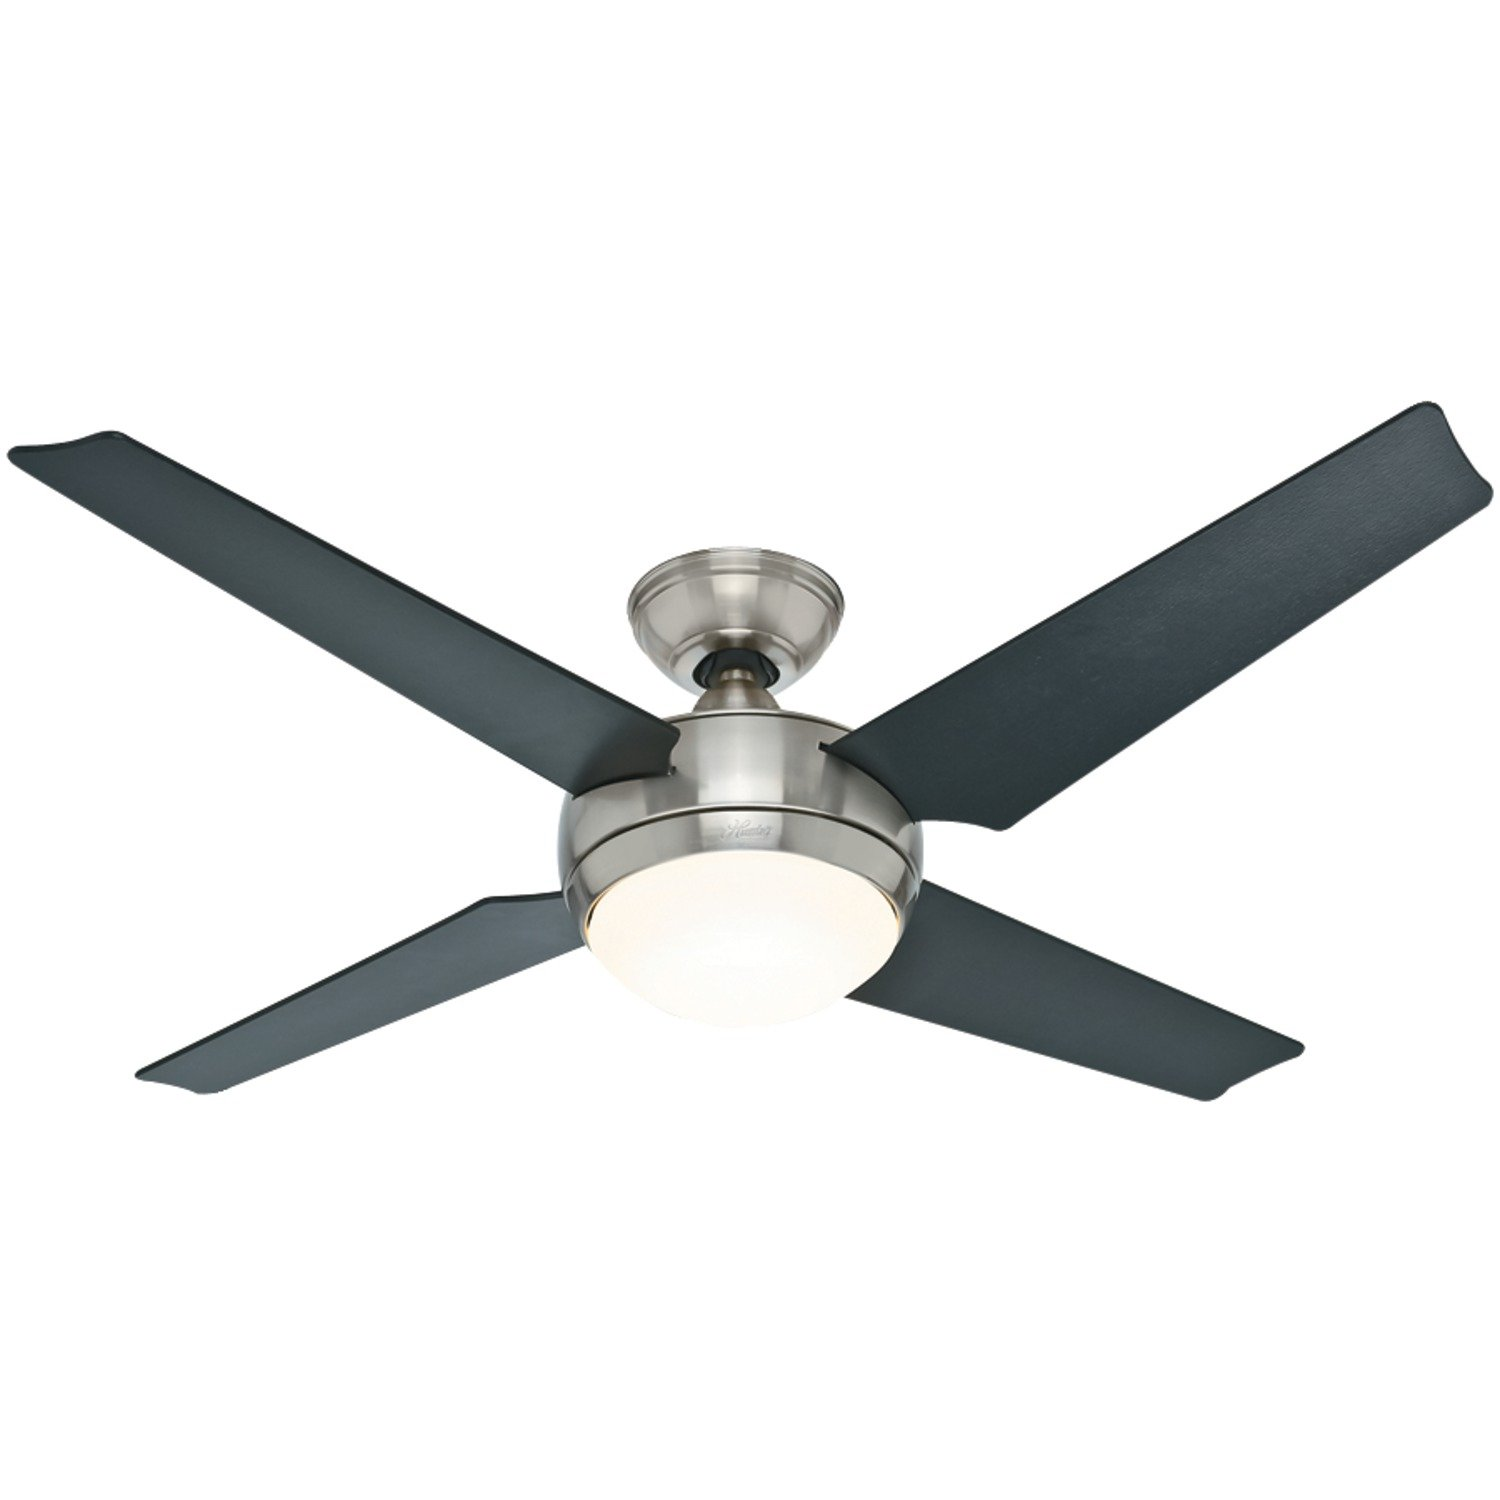 61e4%2BGGqB%2BL._SL1500_ hunter 59072 sonic 52 inch brushed nickel ceiling fan with four  at bakdesigns.co